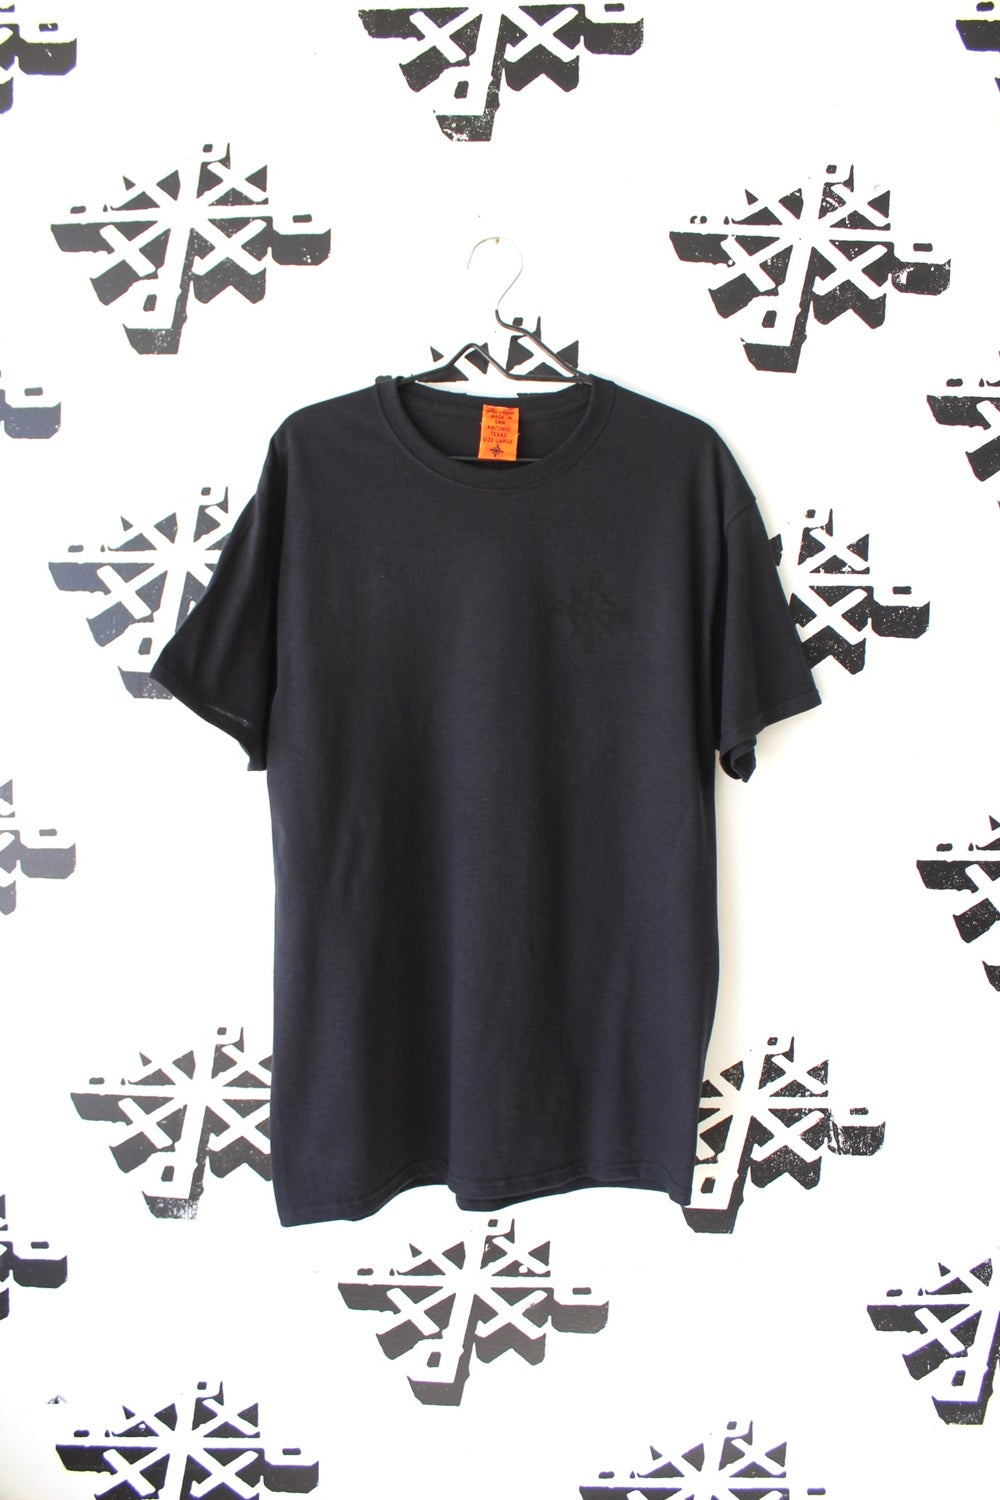 stacked tee in black